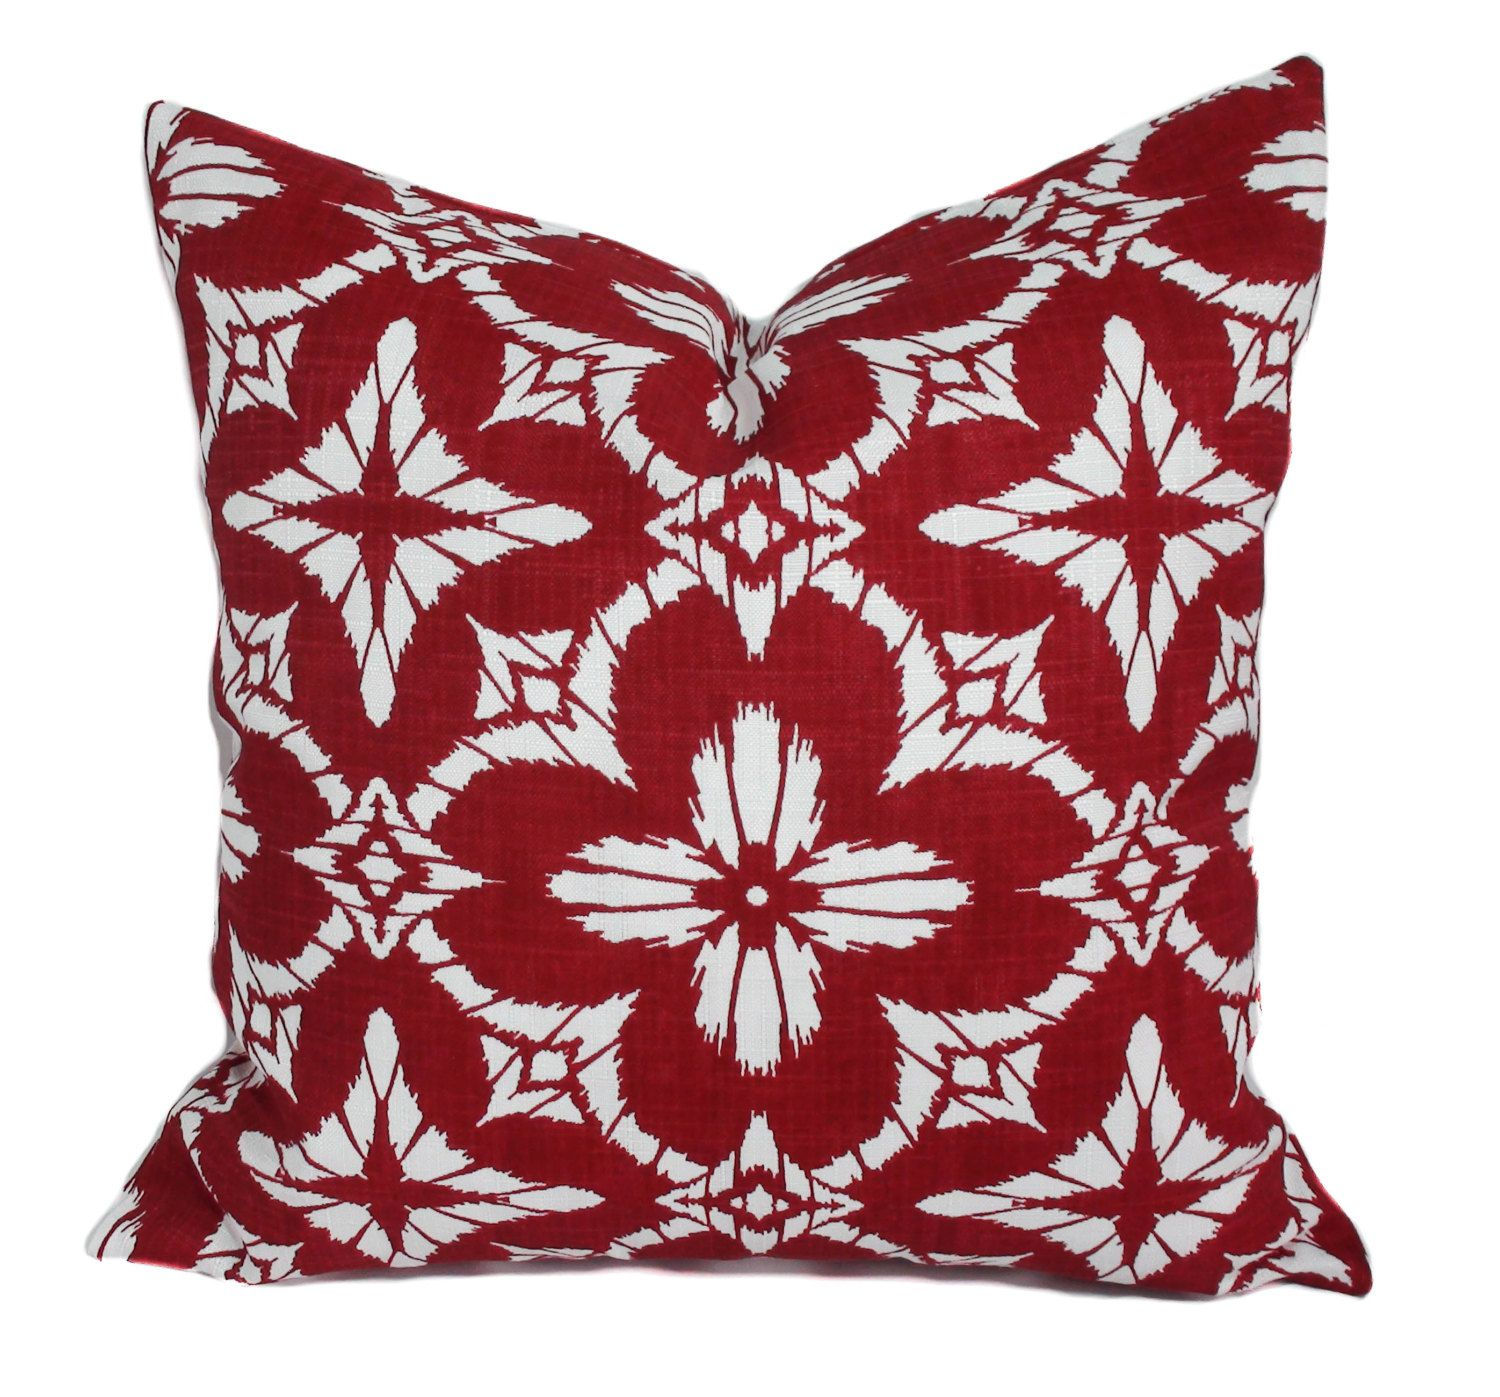 Outdoor Christmas Pillow Cover 18x18 Outdoor Holiday Pillows Outdoor Throw Pillow Outdoor Decorative Pillows Throw Pillows Christmas Christmas Pillow Covers